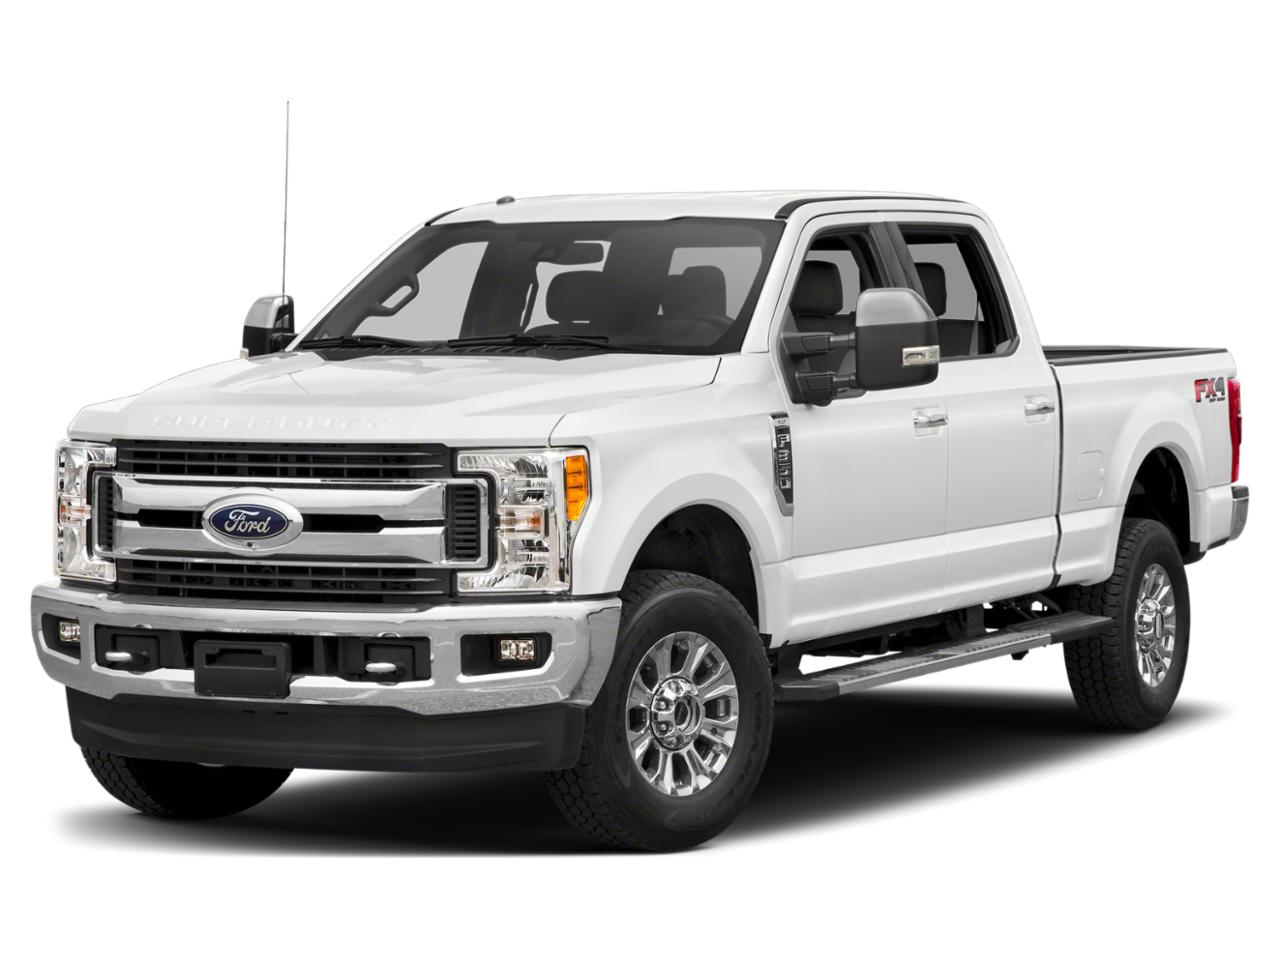 2019 Ford Super Duty F-250 SRW Vehicle Photo in DULUTH, GA 30096